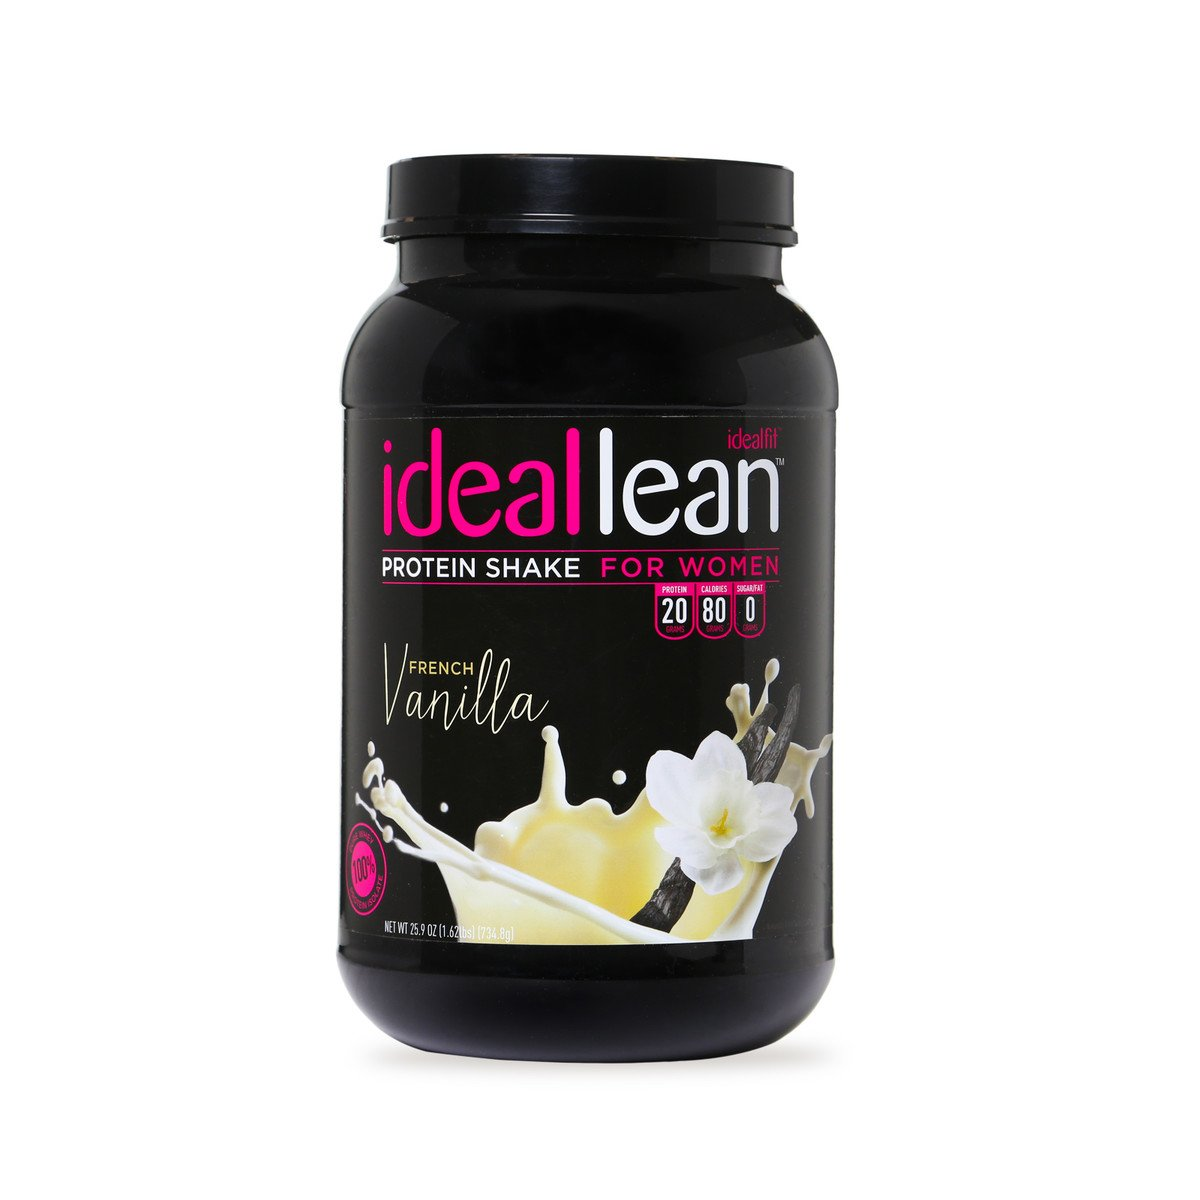 IdealLean - Nutritional Protein Powder for Women   20g Whey Protein Isolate   Supports Weight Loss   Healthy Low Carb Shakes with Folic Acid & Vitamin D   30 Servings (French Vanilla)